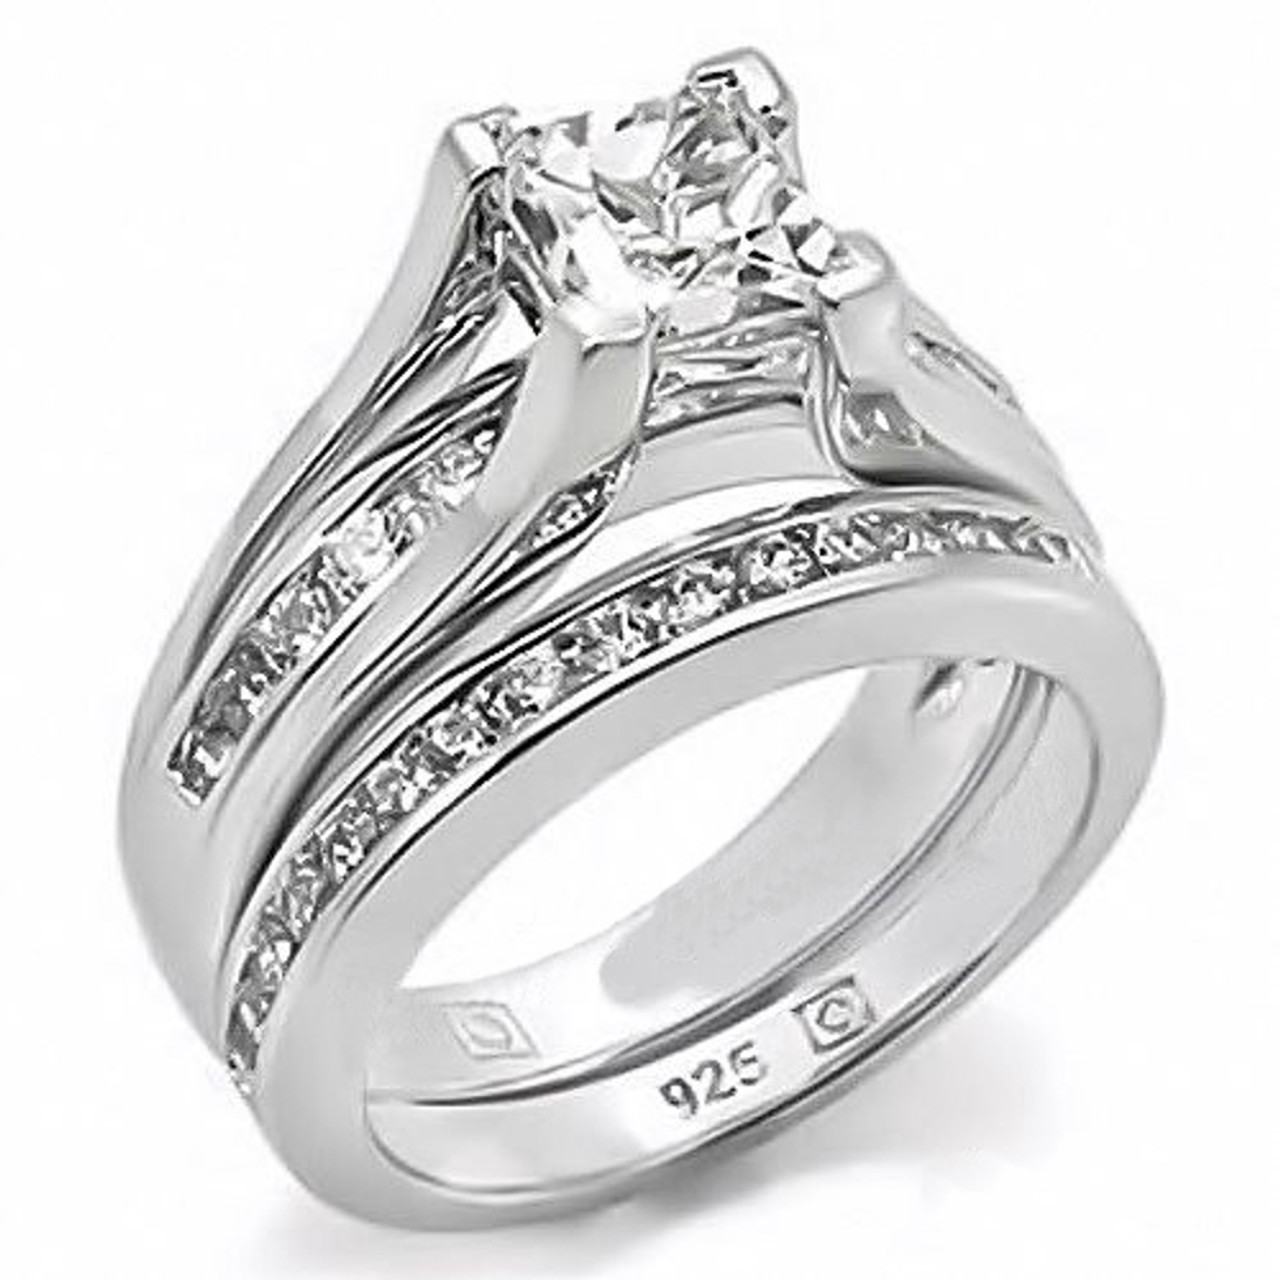 Arlos256 Women S 925 Sterling Silver 2 10 Ct Princess Cubic Zirconia Wedding Ring Set Marimorjewelry Com